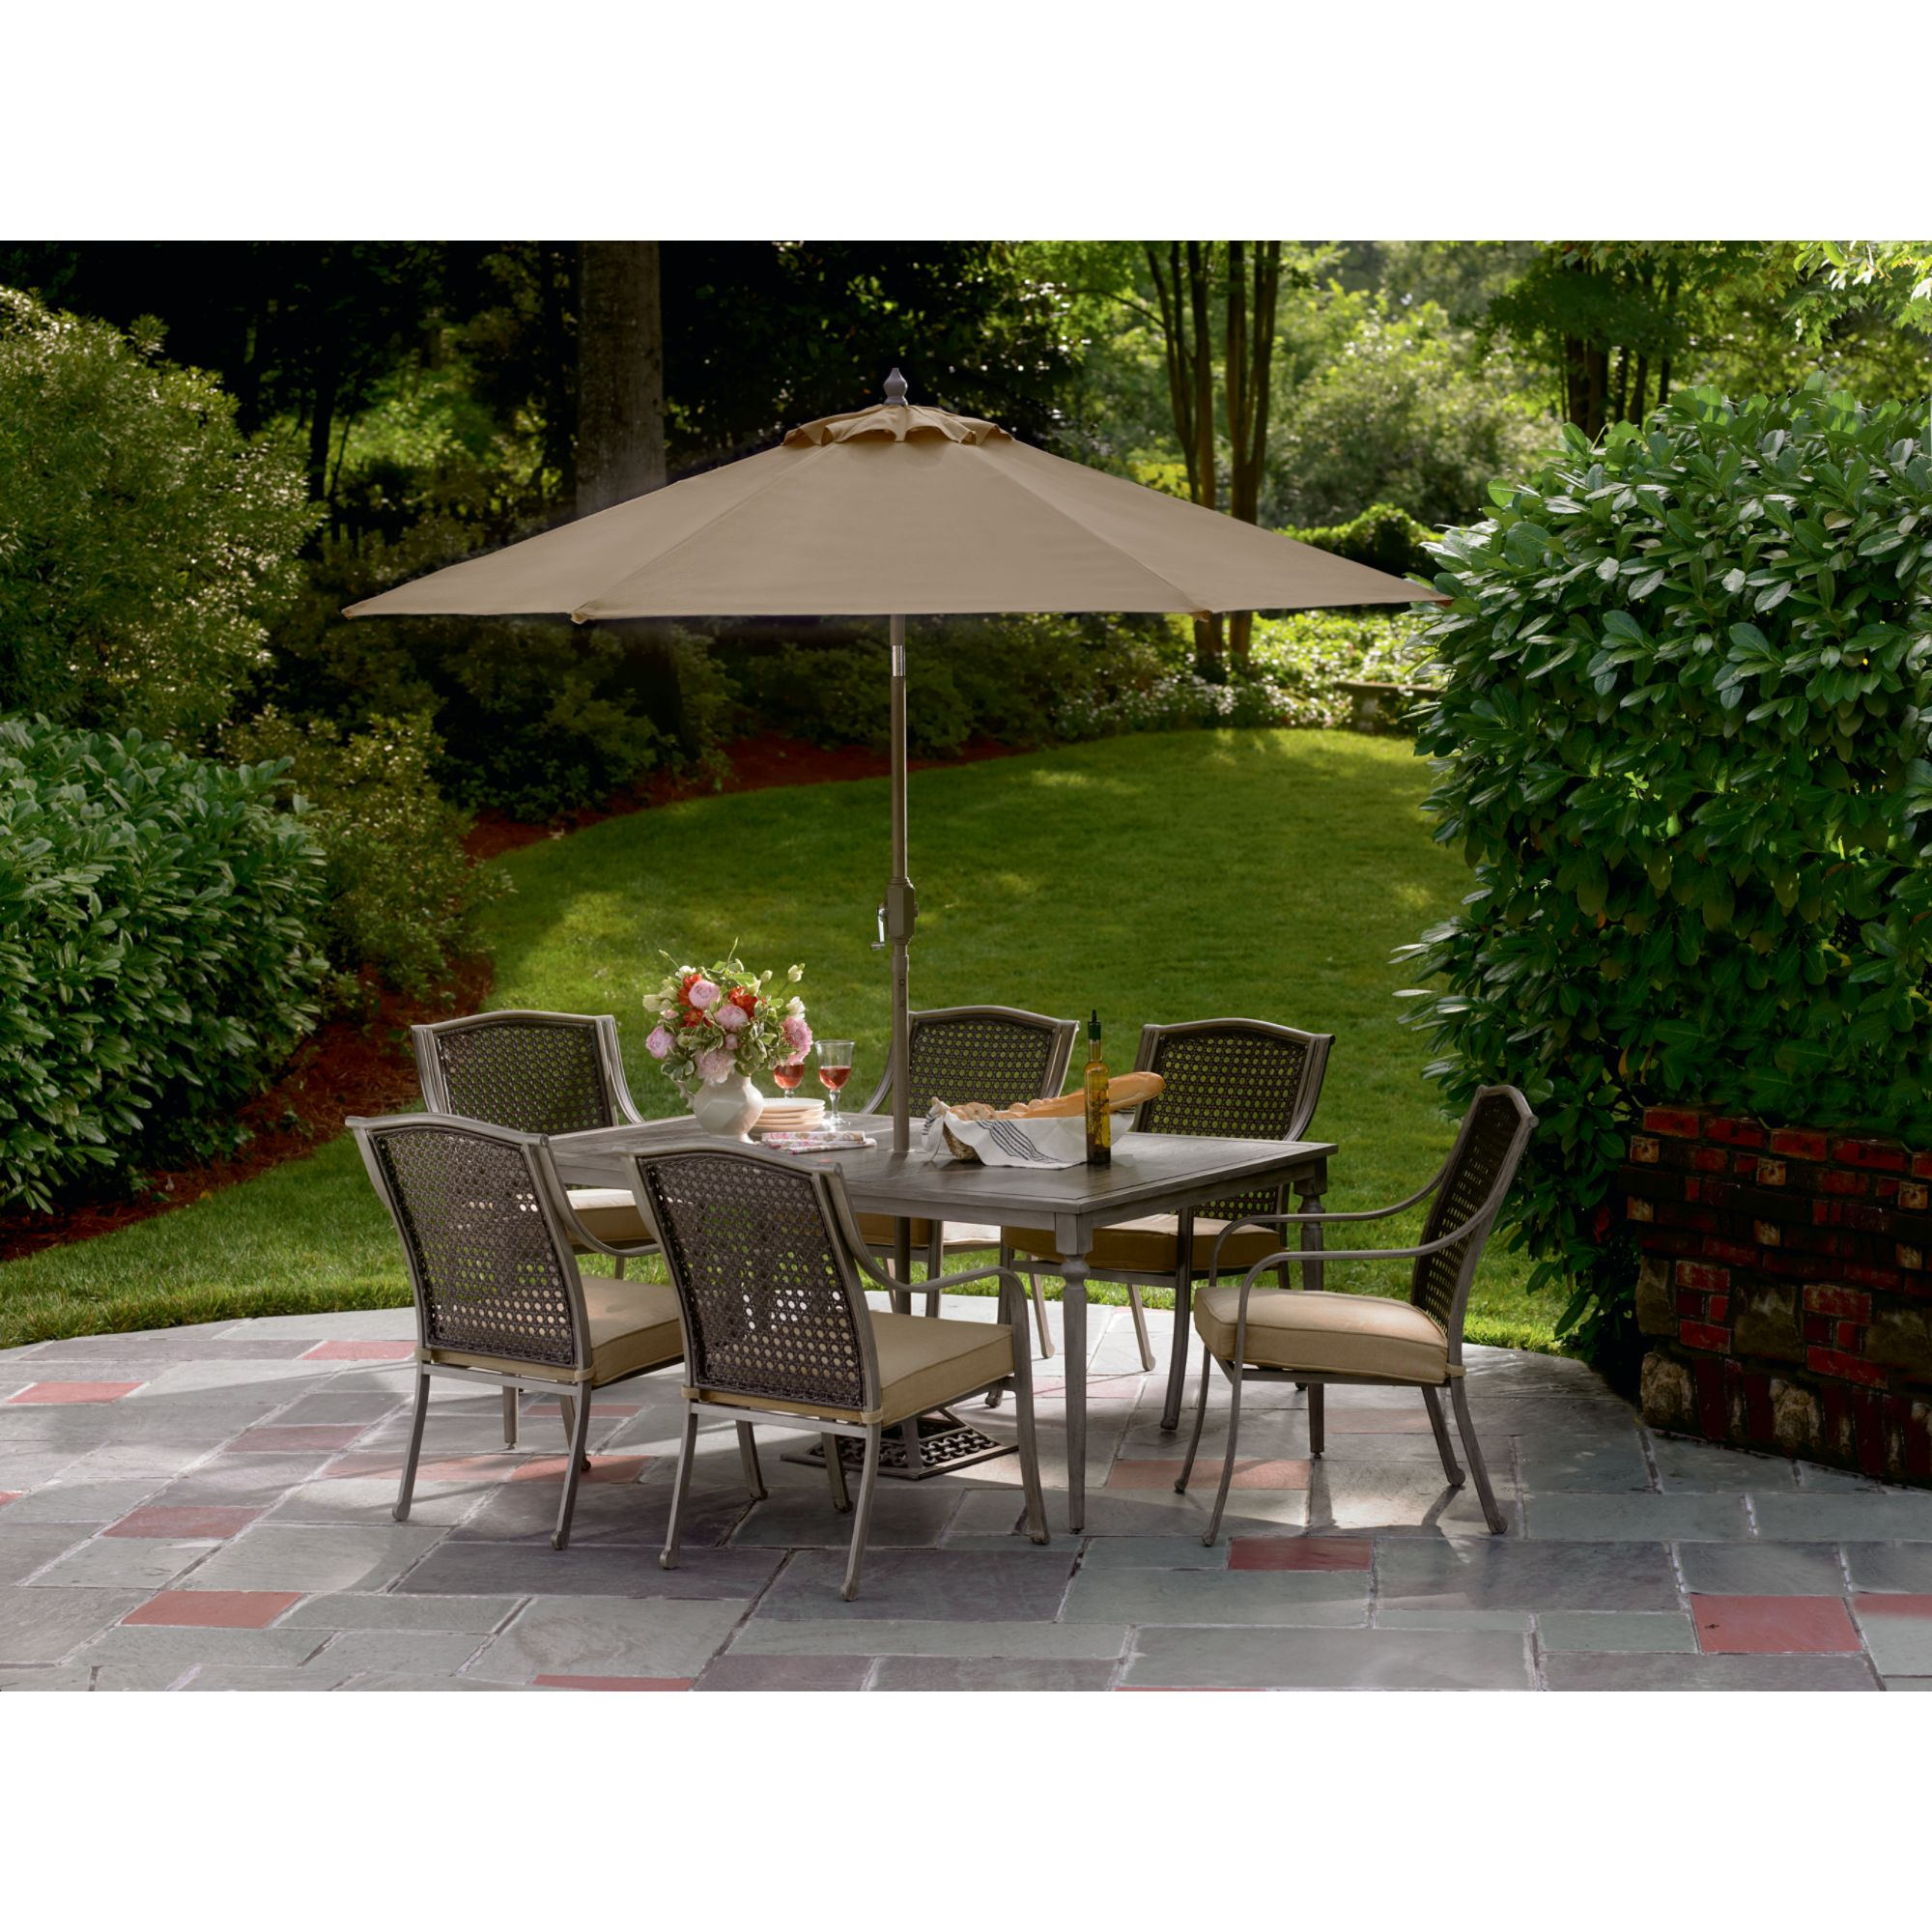 Simply Outdoors Crimora 7 Pc. Dining Set - Outdoor Living